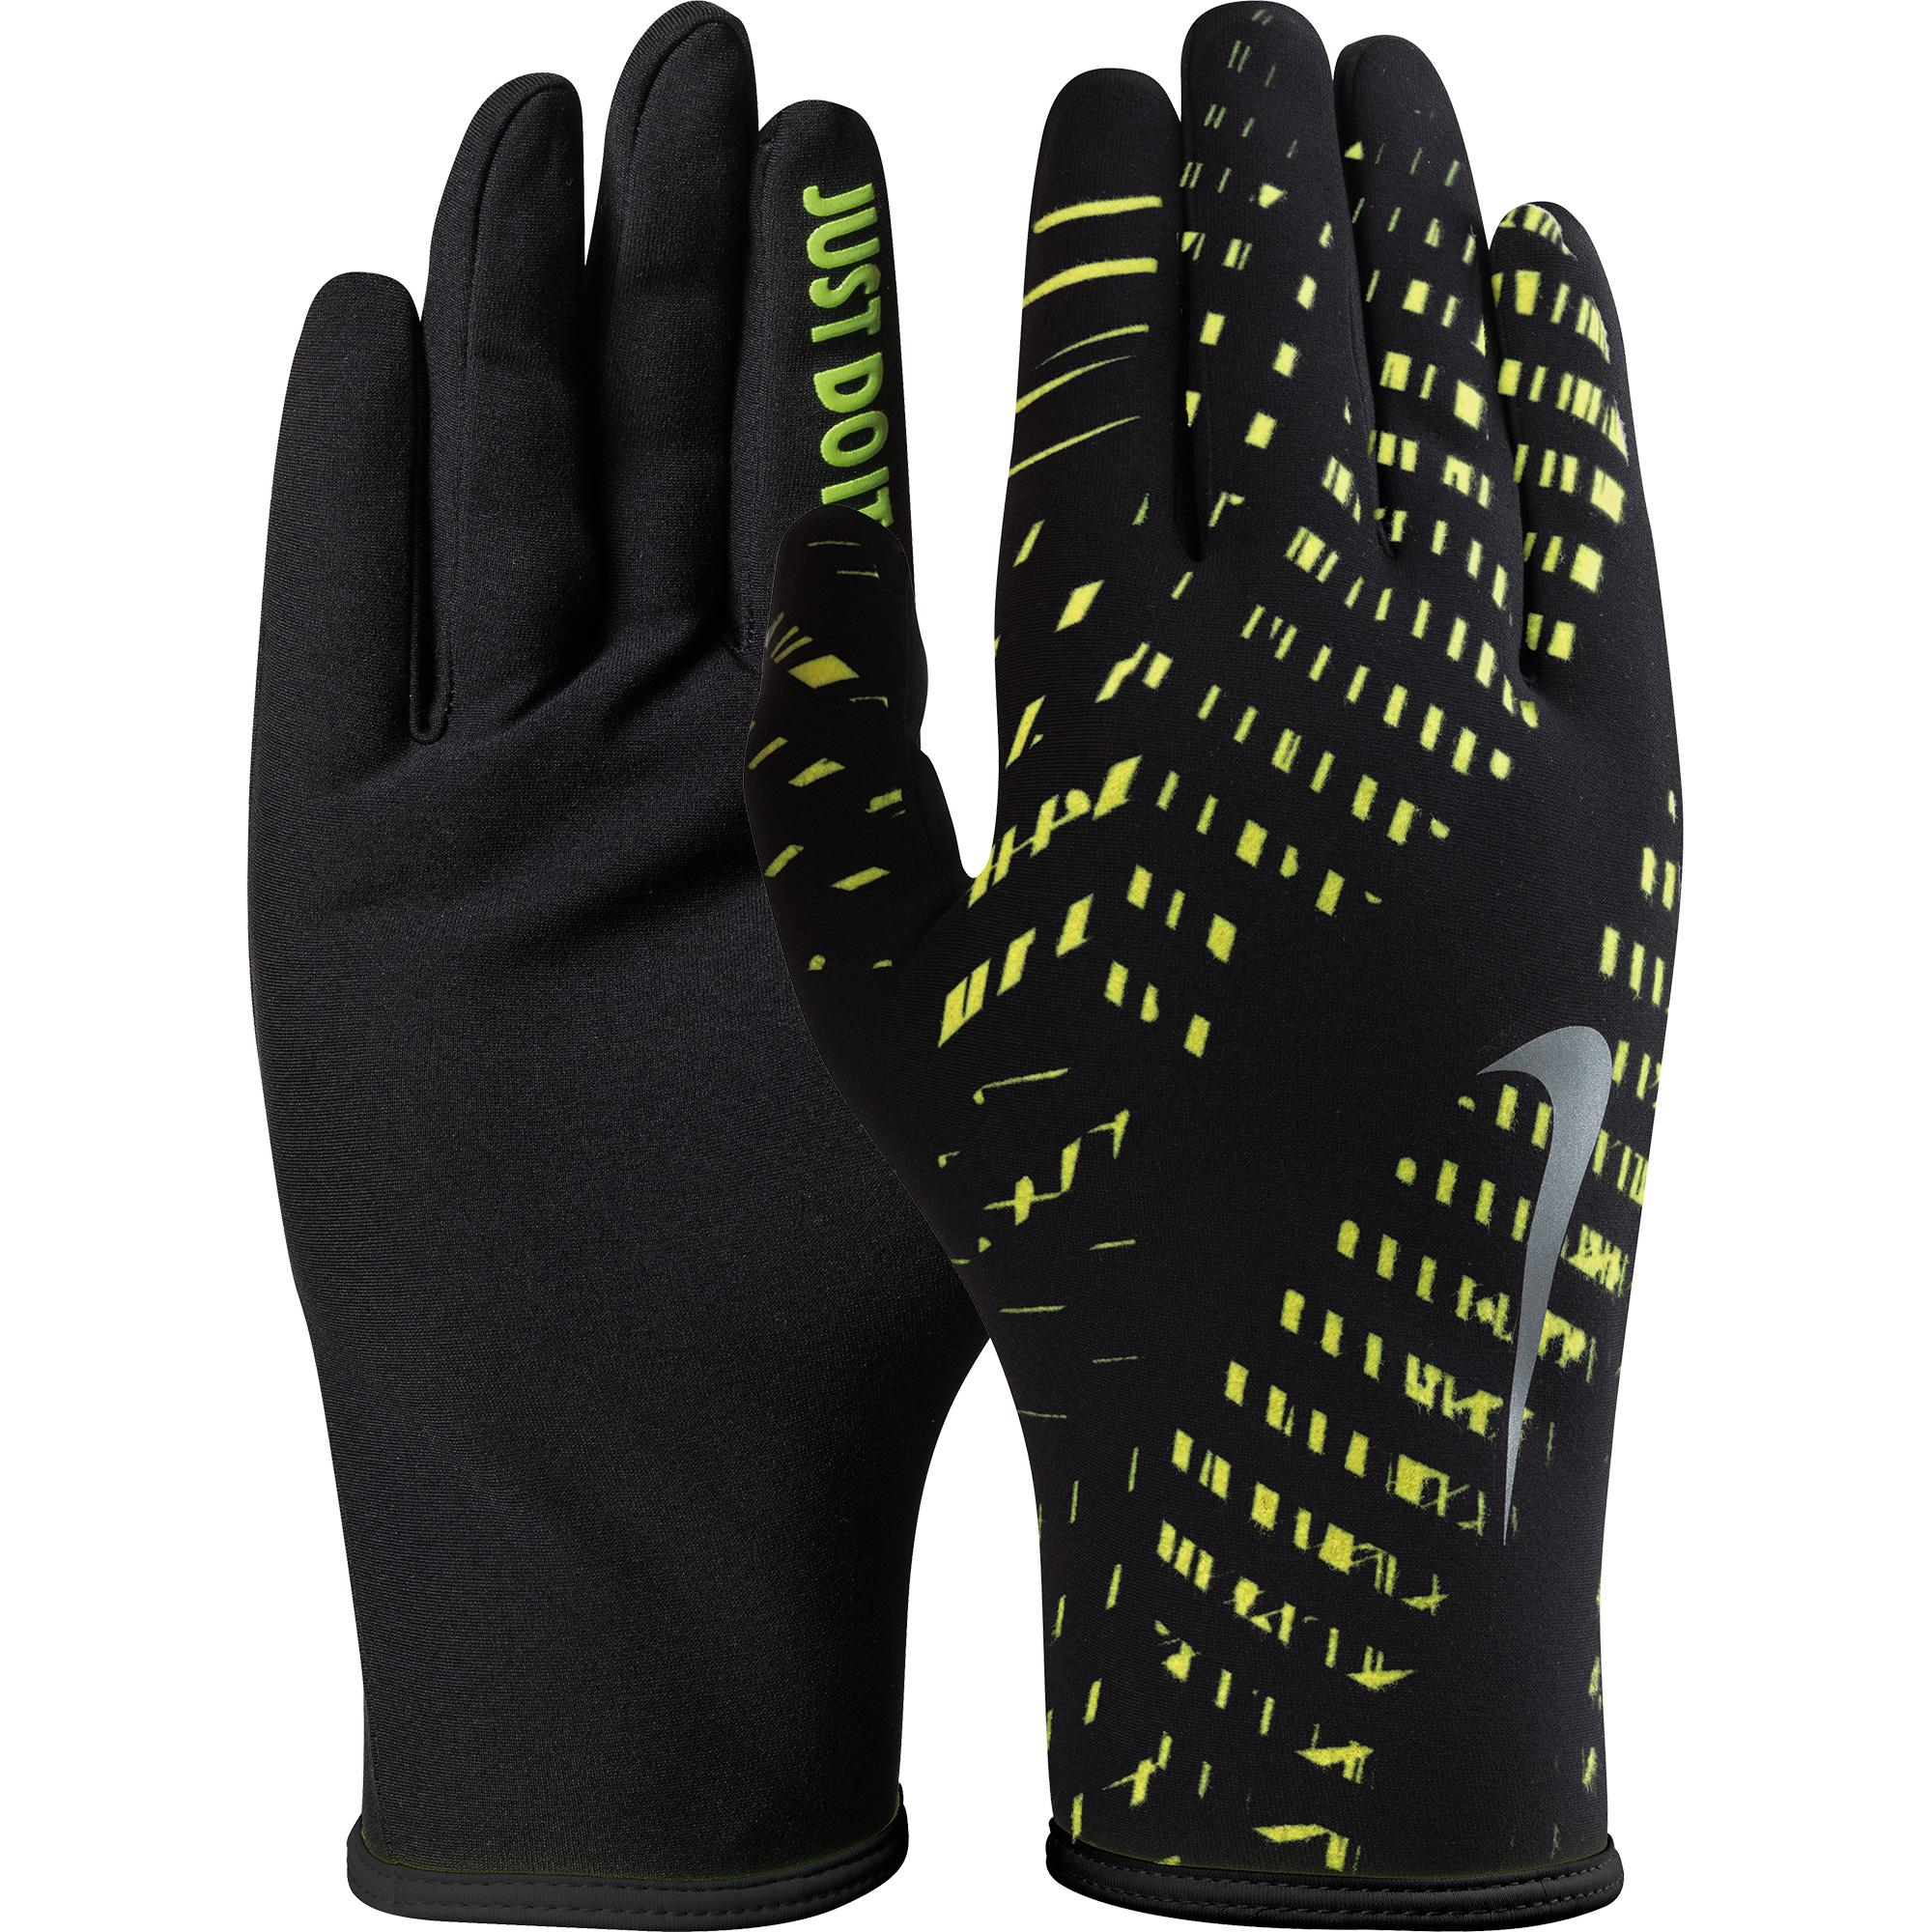 official photos e520b 8b5df Nike Mens Lightweight Rival 2.0 Running Gloves - Black Volt - Tennisnuts.com